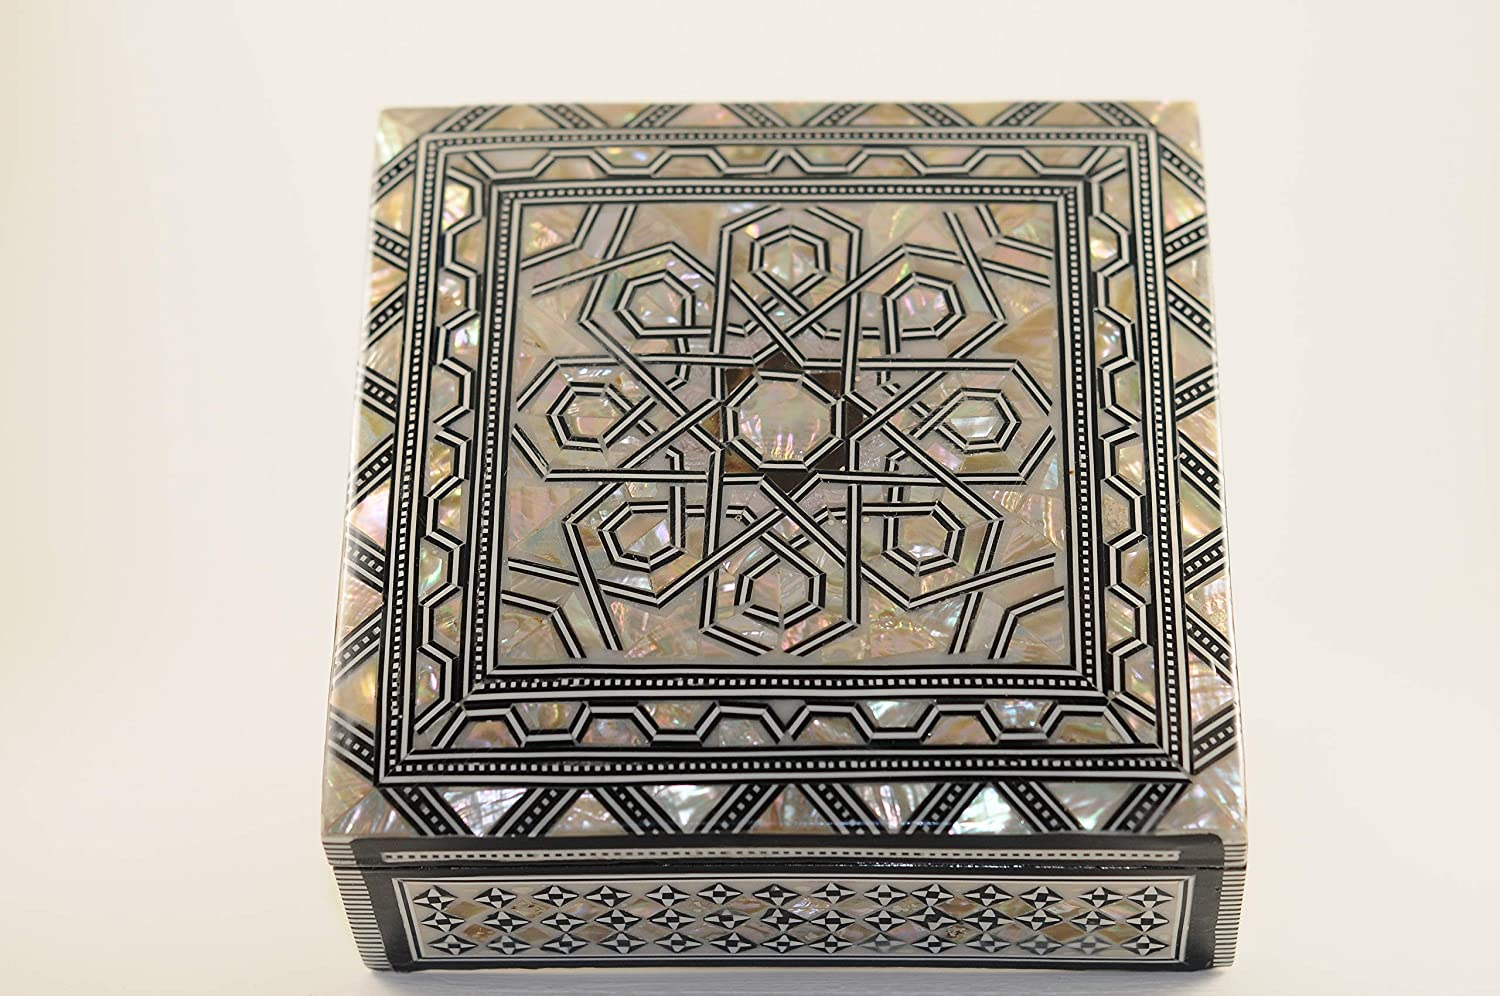 Wonderful Egyptian Handmade Jewelry Box - Beech Wood with Inlaid Mother of Pearl (6 x 6 inches)